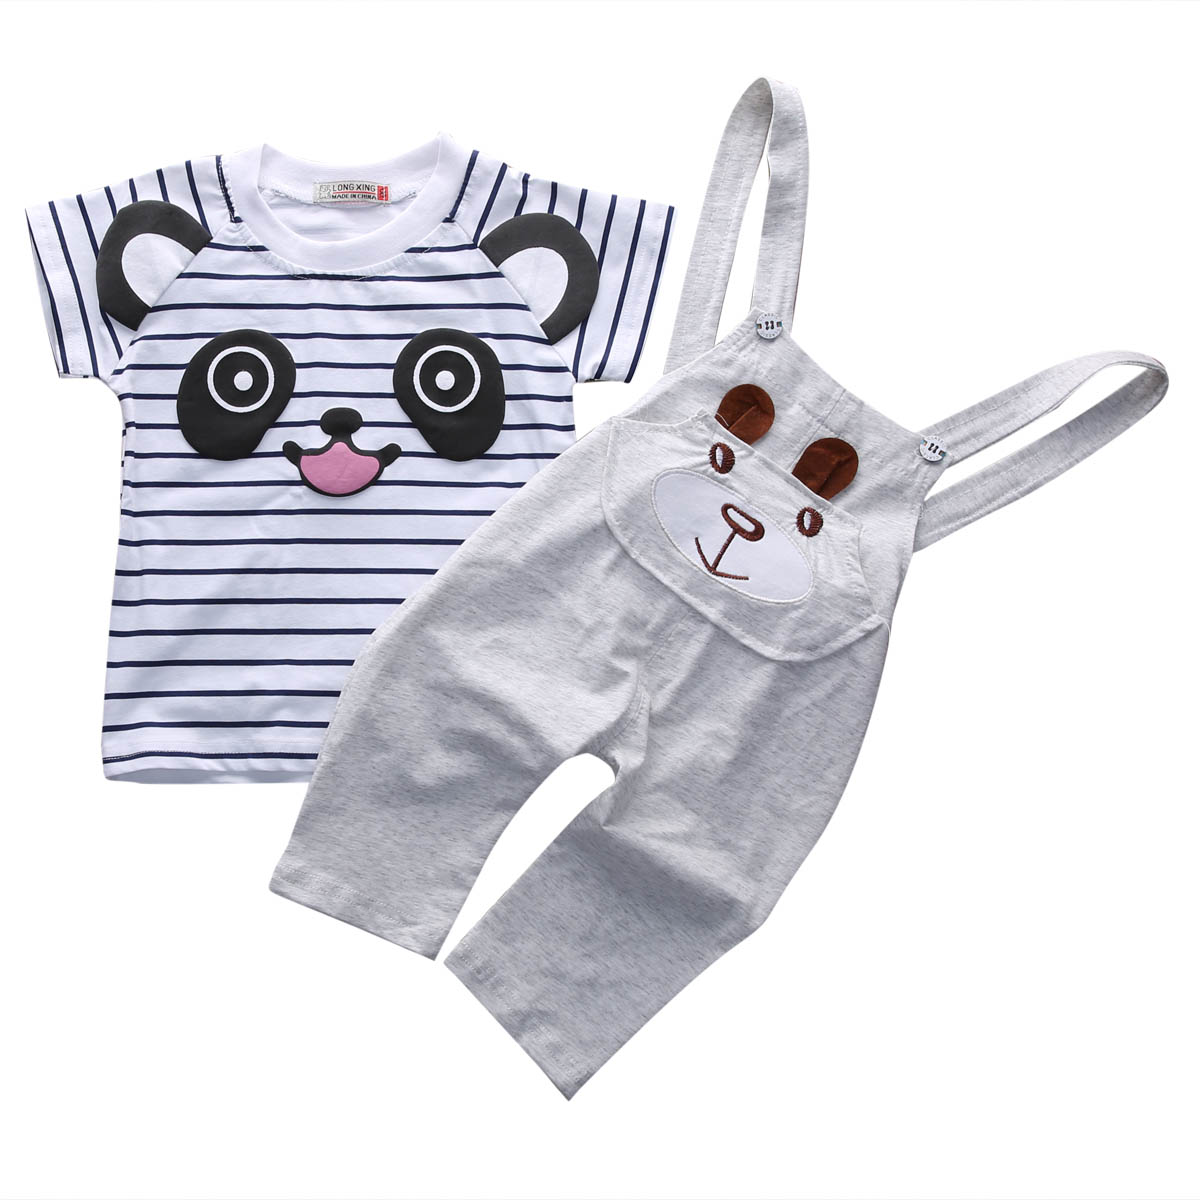 Cute 2PCS Newborn Kids Baby Boy Girls T-shirt Tops+Pants Overalls Outfits Clothes Set Summer Striped Tees Clothing чаша для мультиварки steba dd 1eco